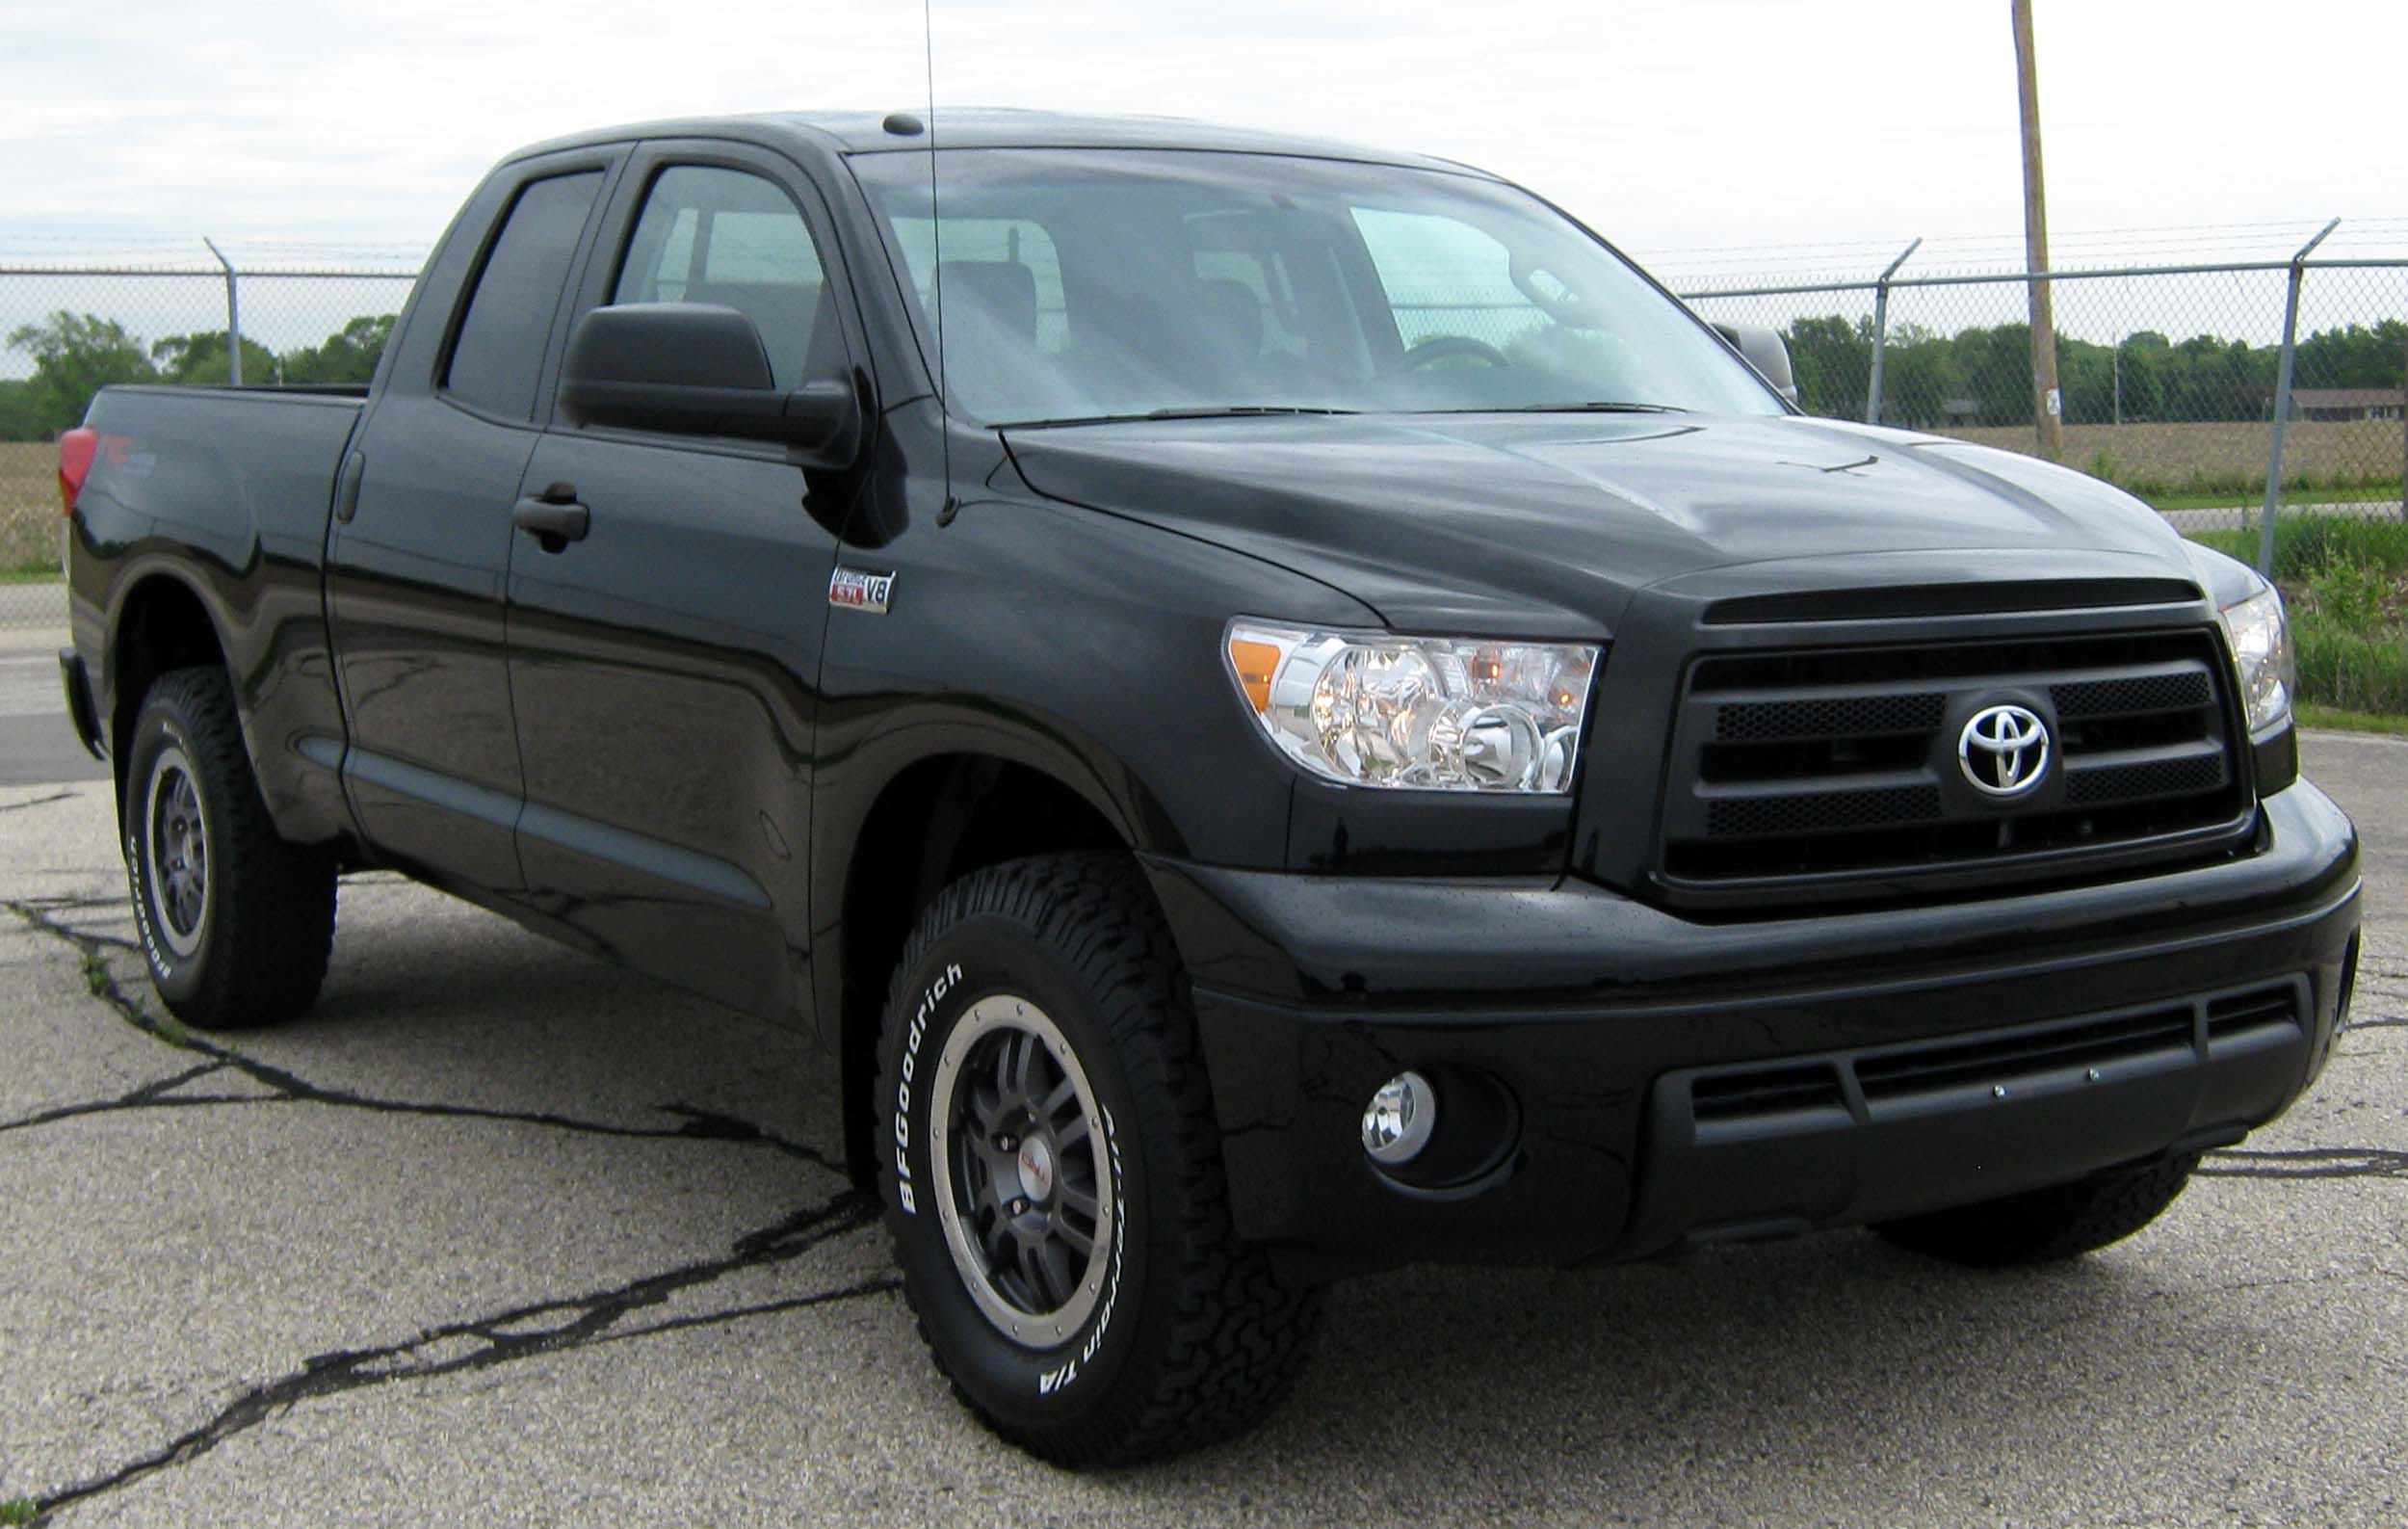 2013 Toyota Tundra Trd Rock Warrior Double Cab 4x4 Black Black Photo ...